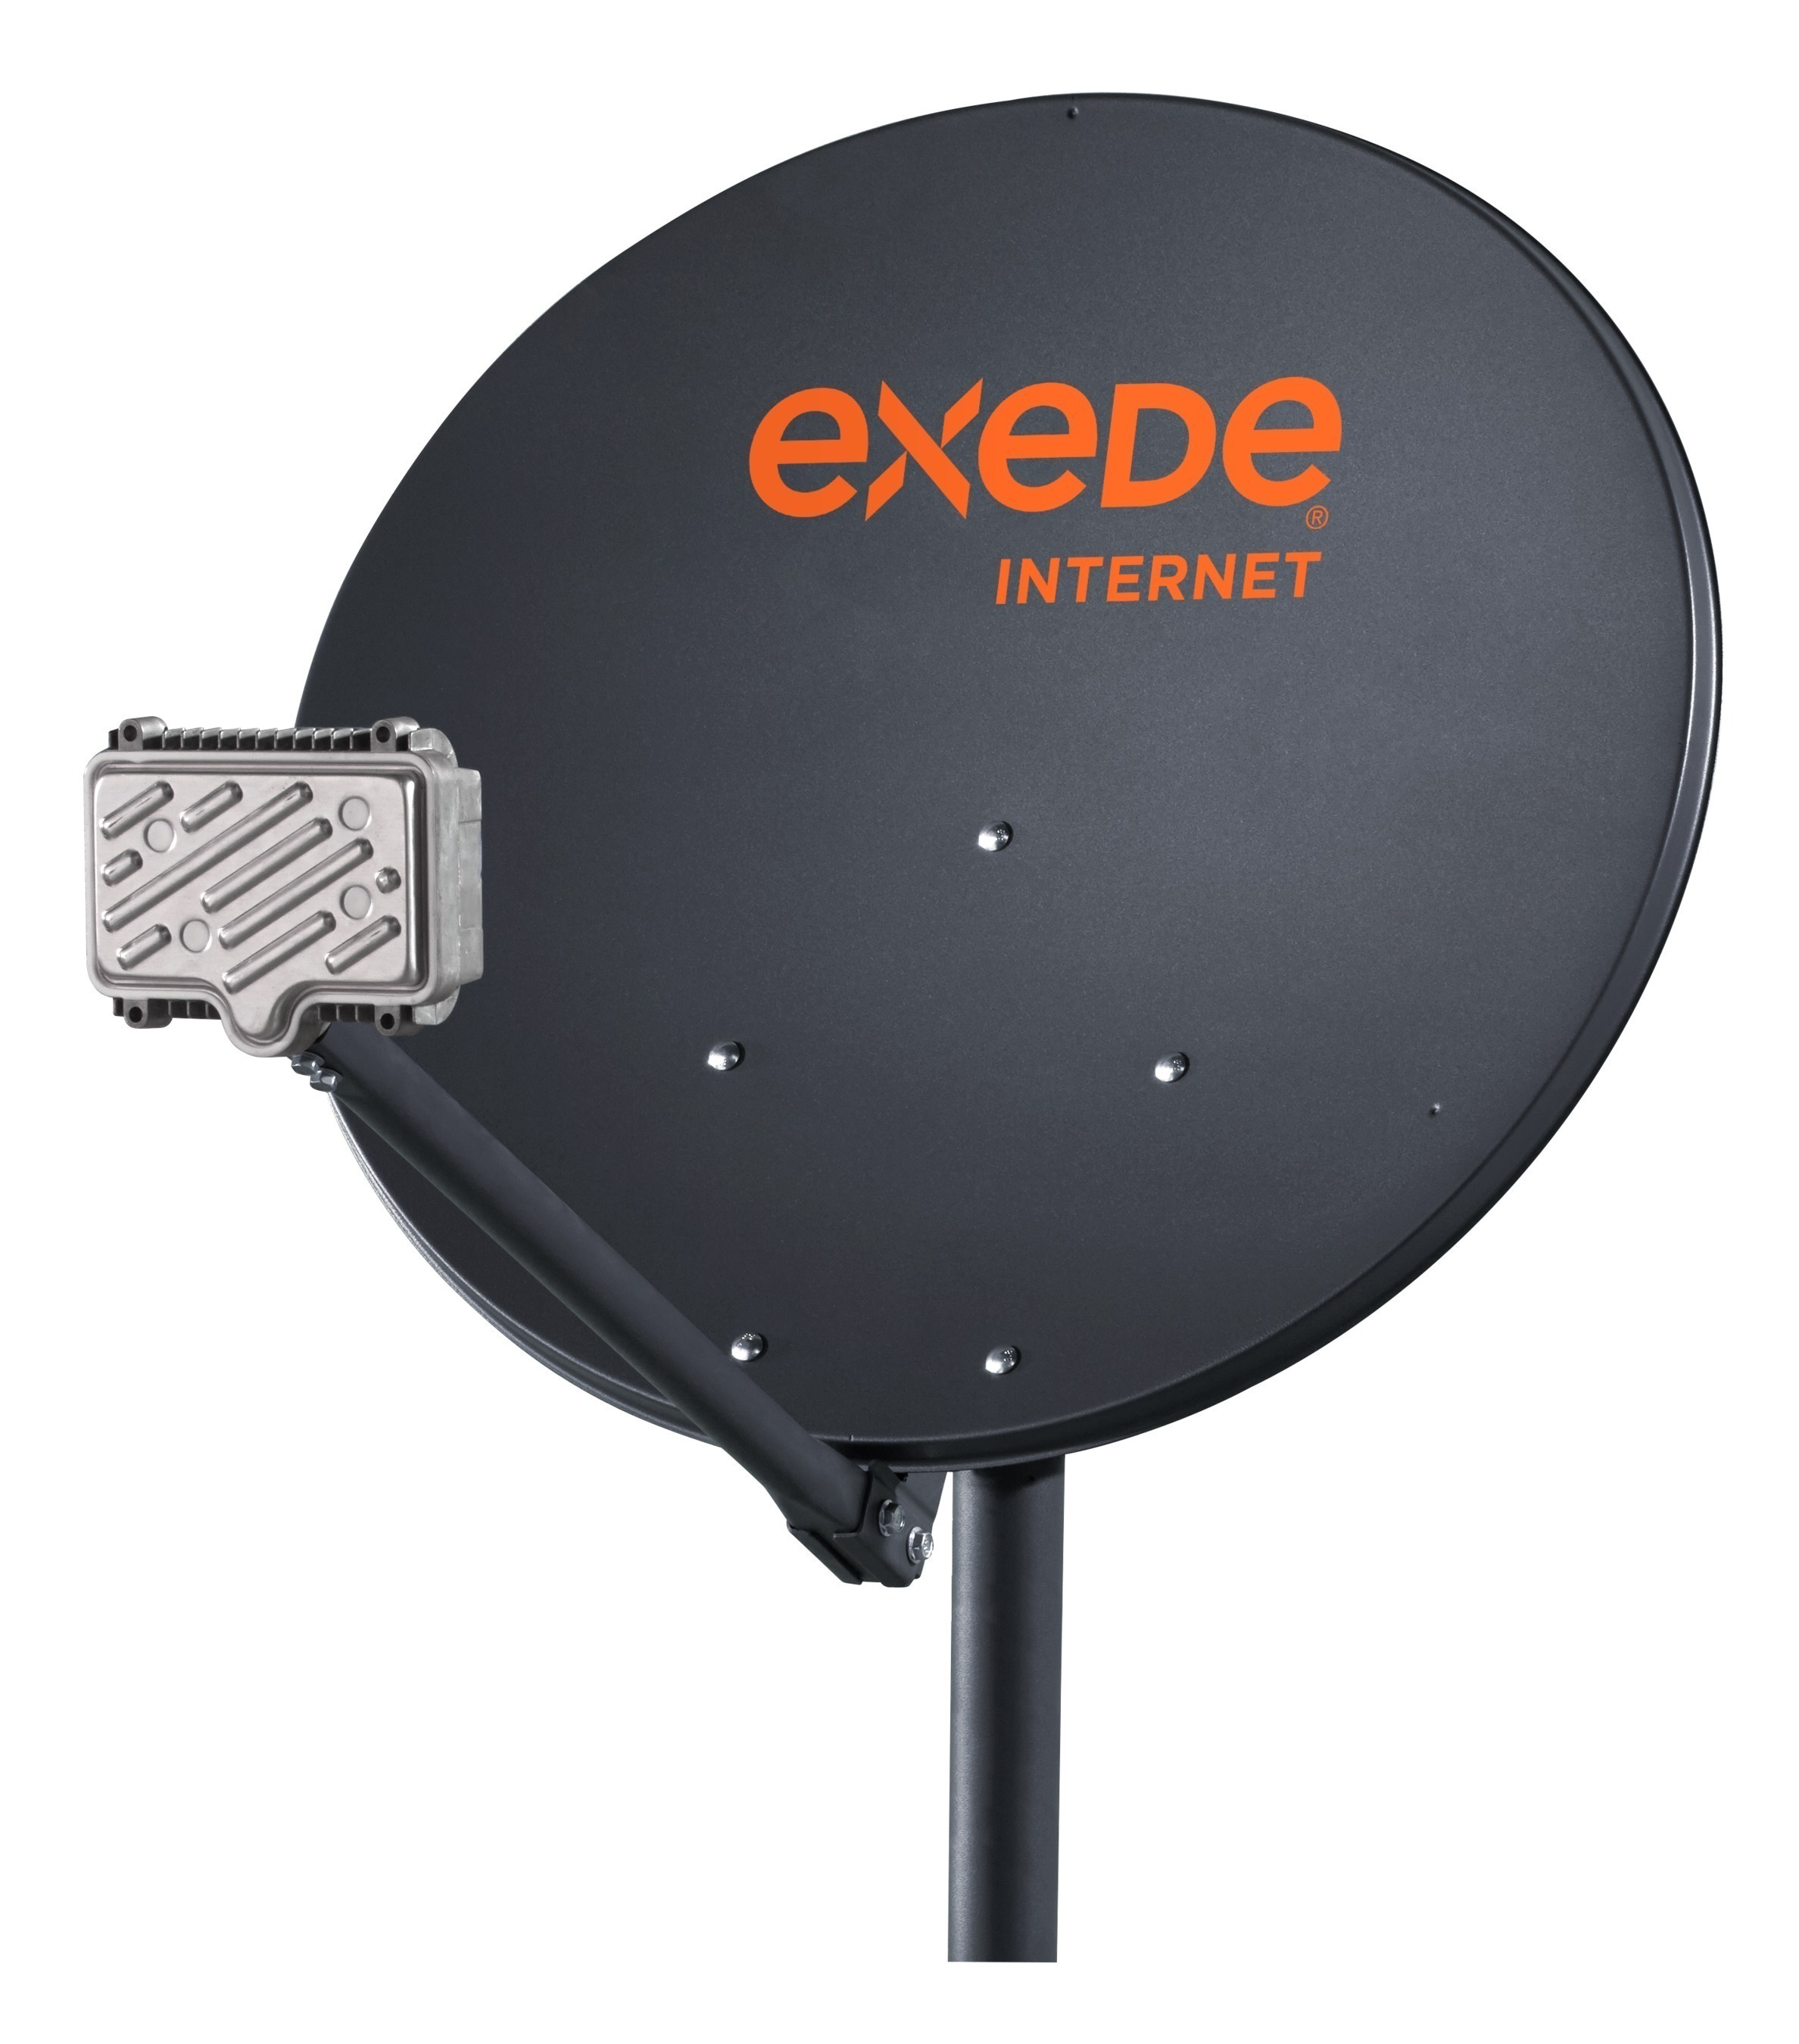 Viasat Exede Debuts First Virtually Unlimited Satellite Internet